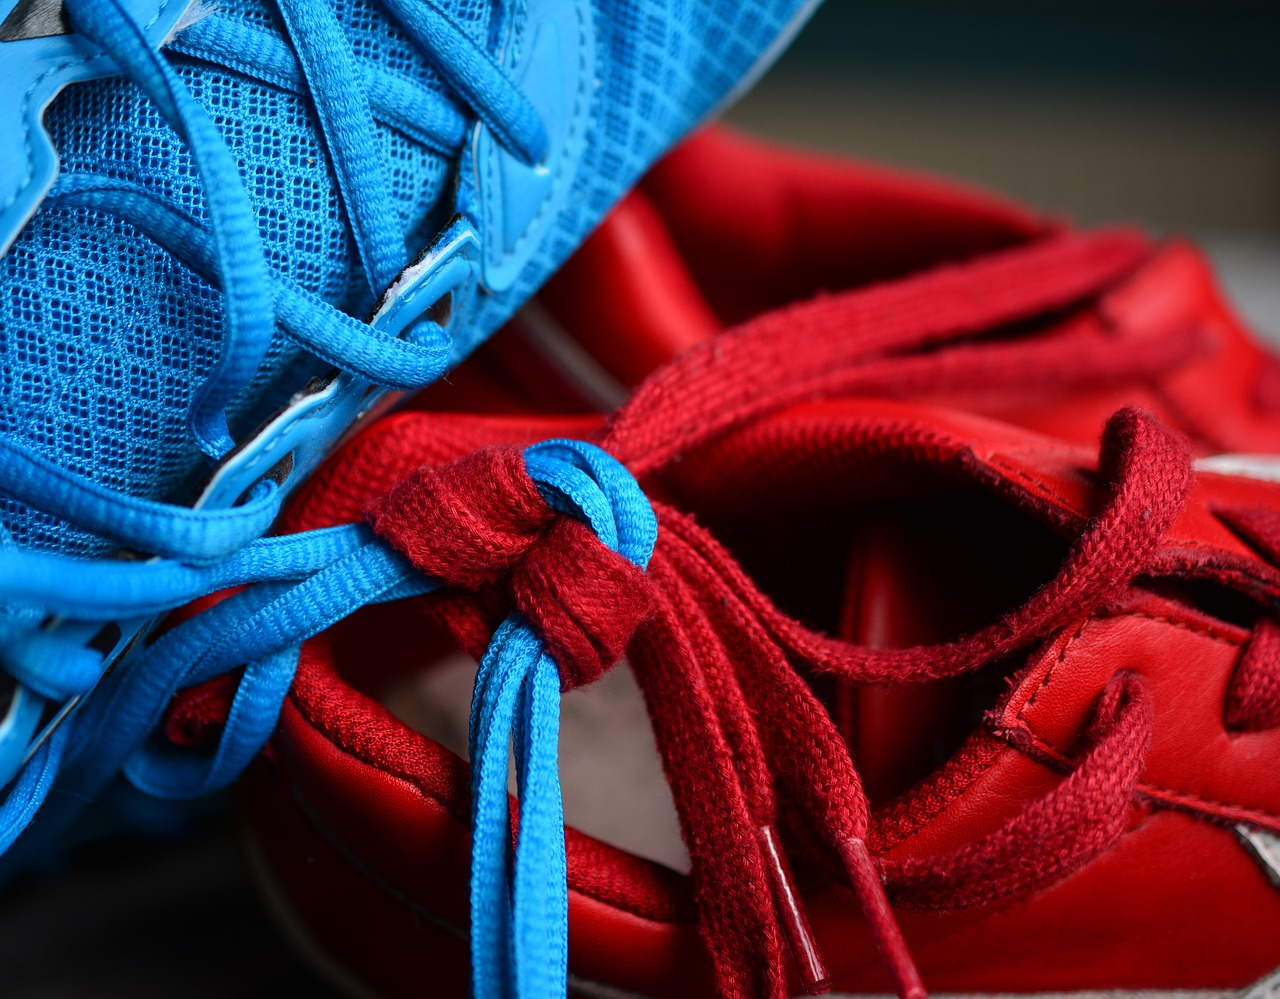 shoelace,knot,knotted,together,keep together,connection,partnership,partner,shoes,for two,shoelaces,bind,strong together,symbolism,red,blue,free pictures, free photos, free images, royalty free, free illustrations, public domain